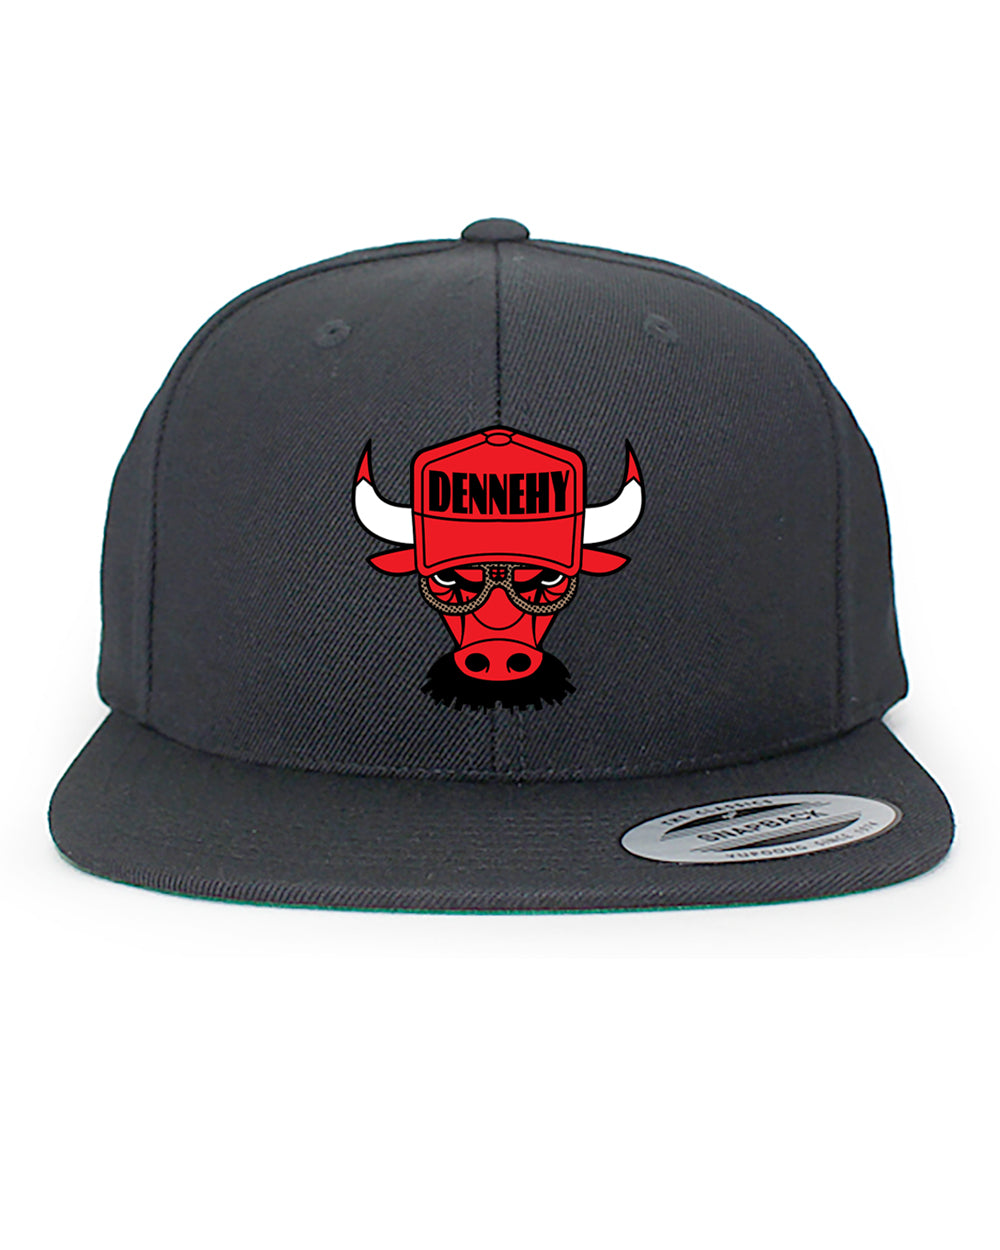 // 7 DAY PRESALE // DENNEHY BULLS SNAPBACK HAT - BLACK